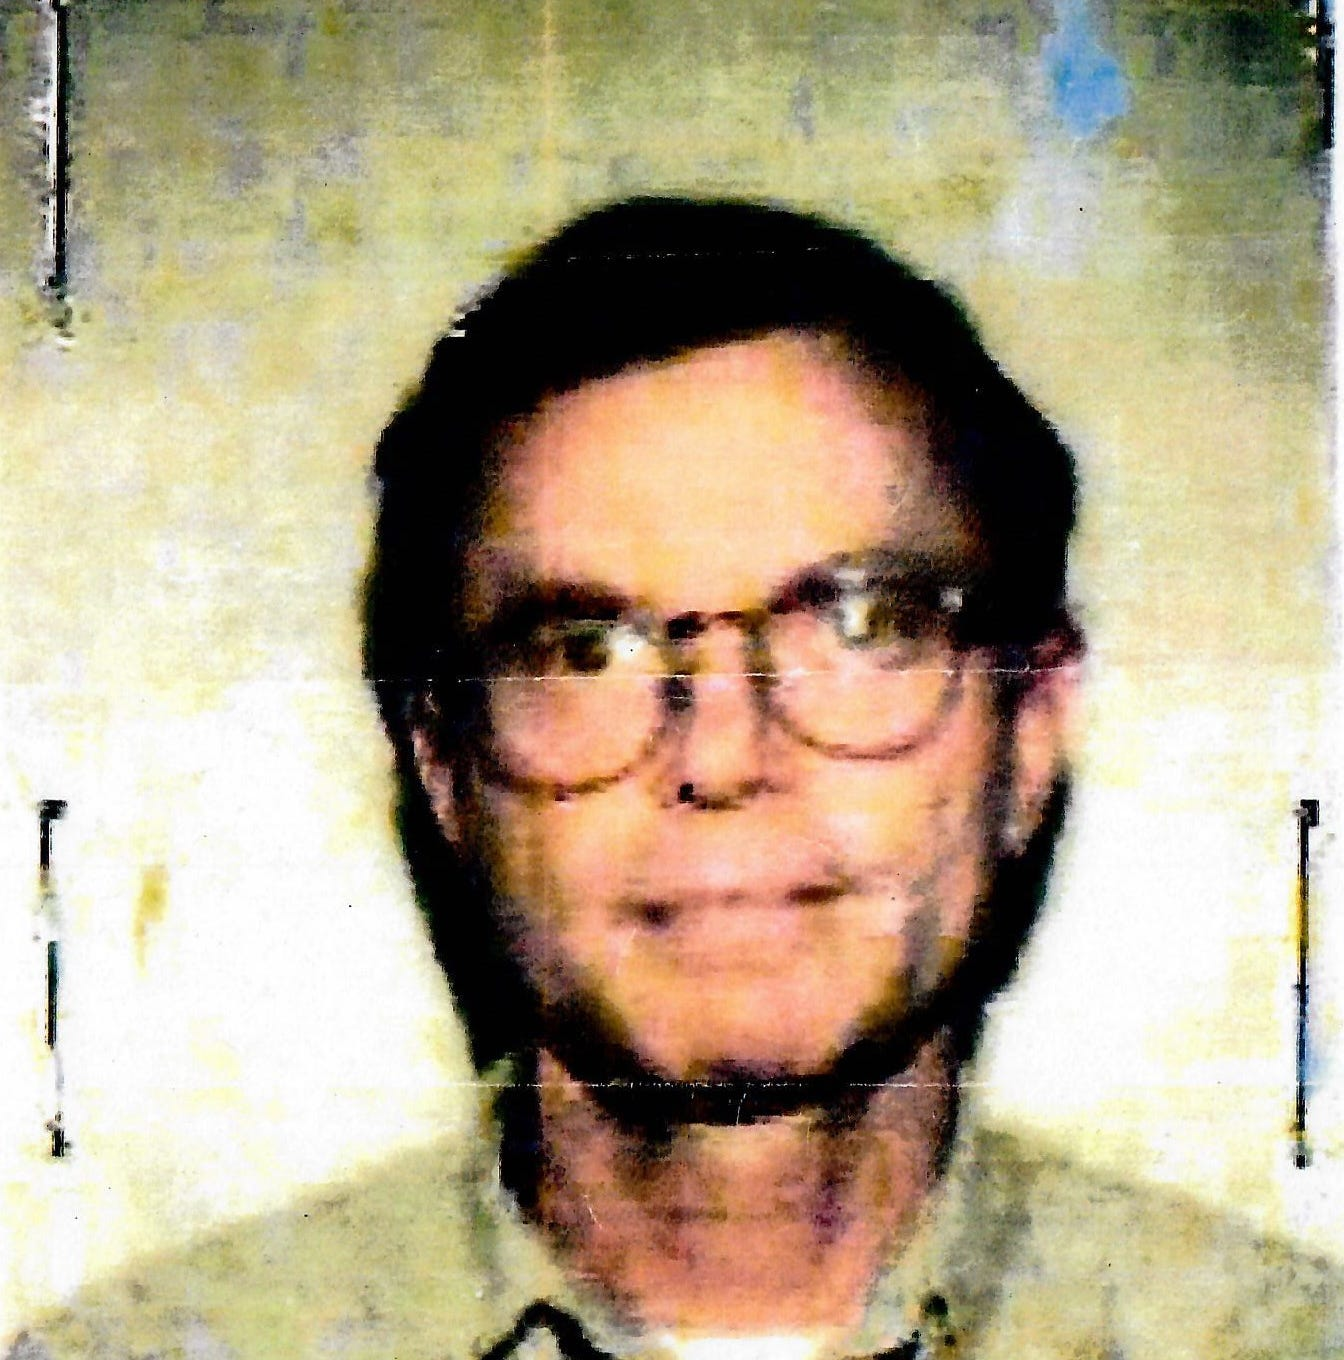 Ex-pediatrician and 'serial predator' sentenced to 18 years for Browning sex abuse